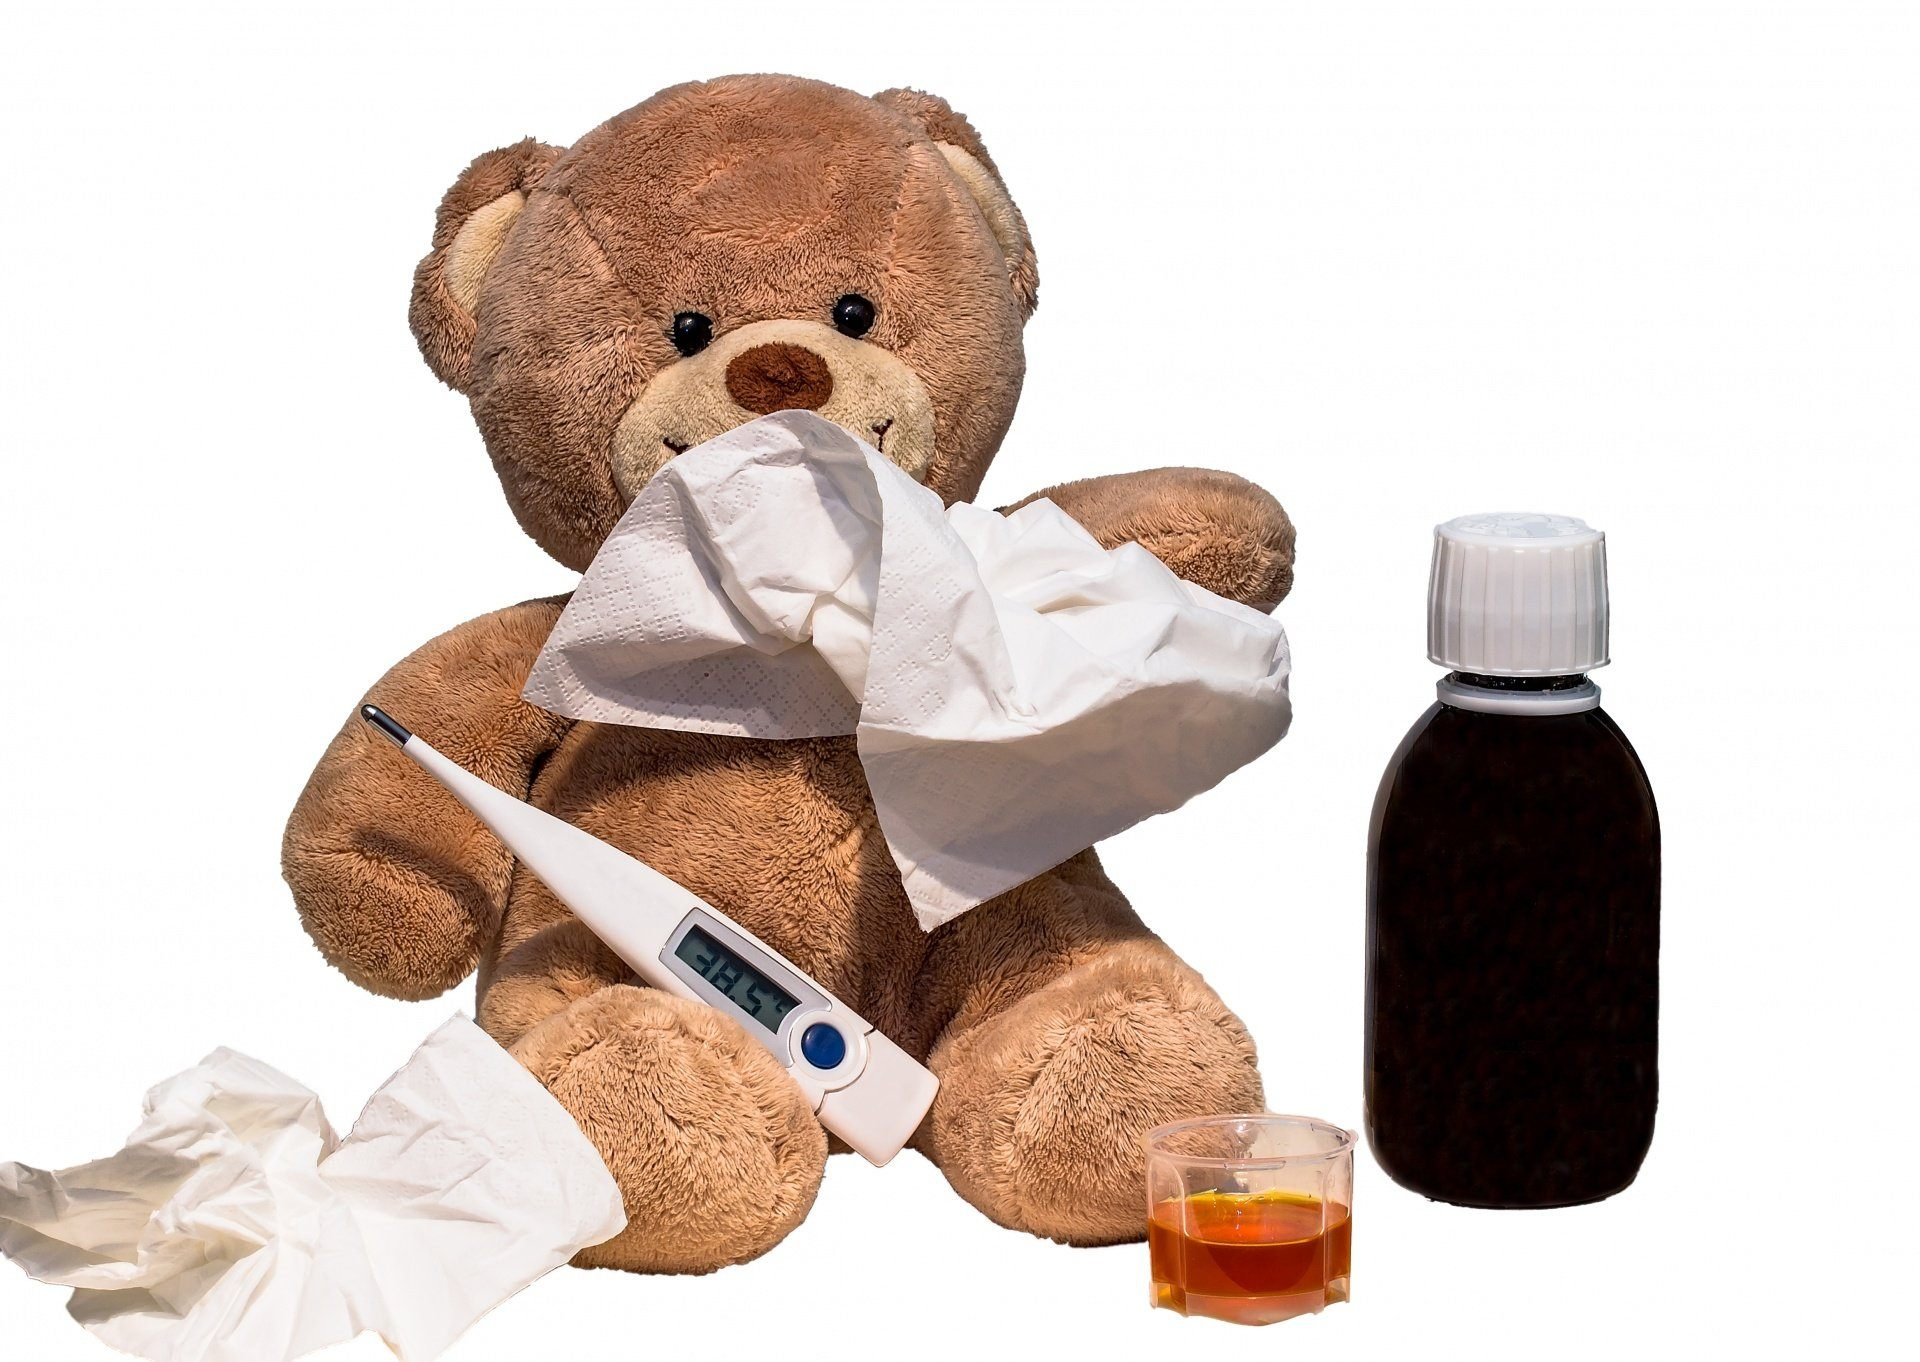 Protect Yourself from Colds and The Flu!